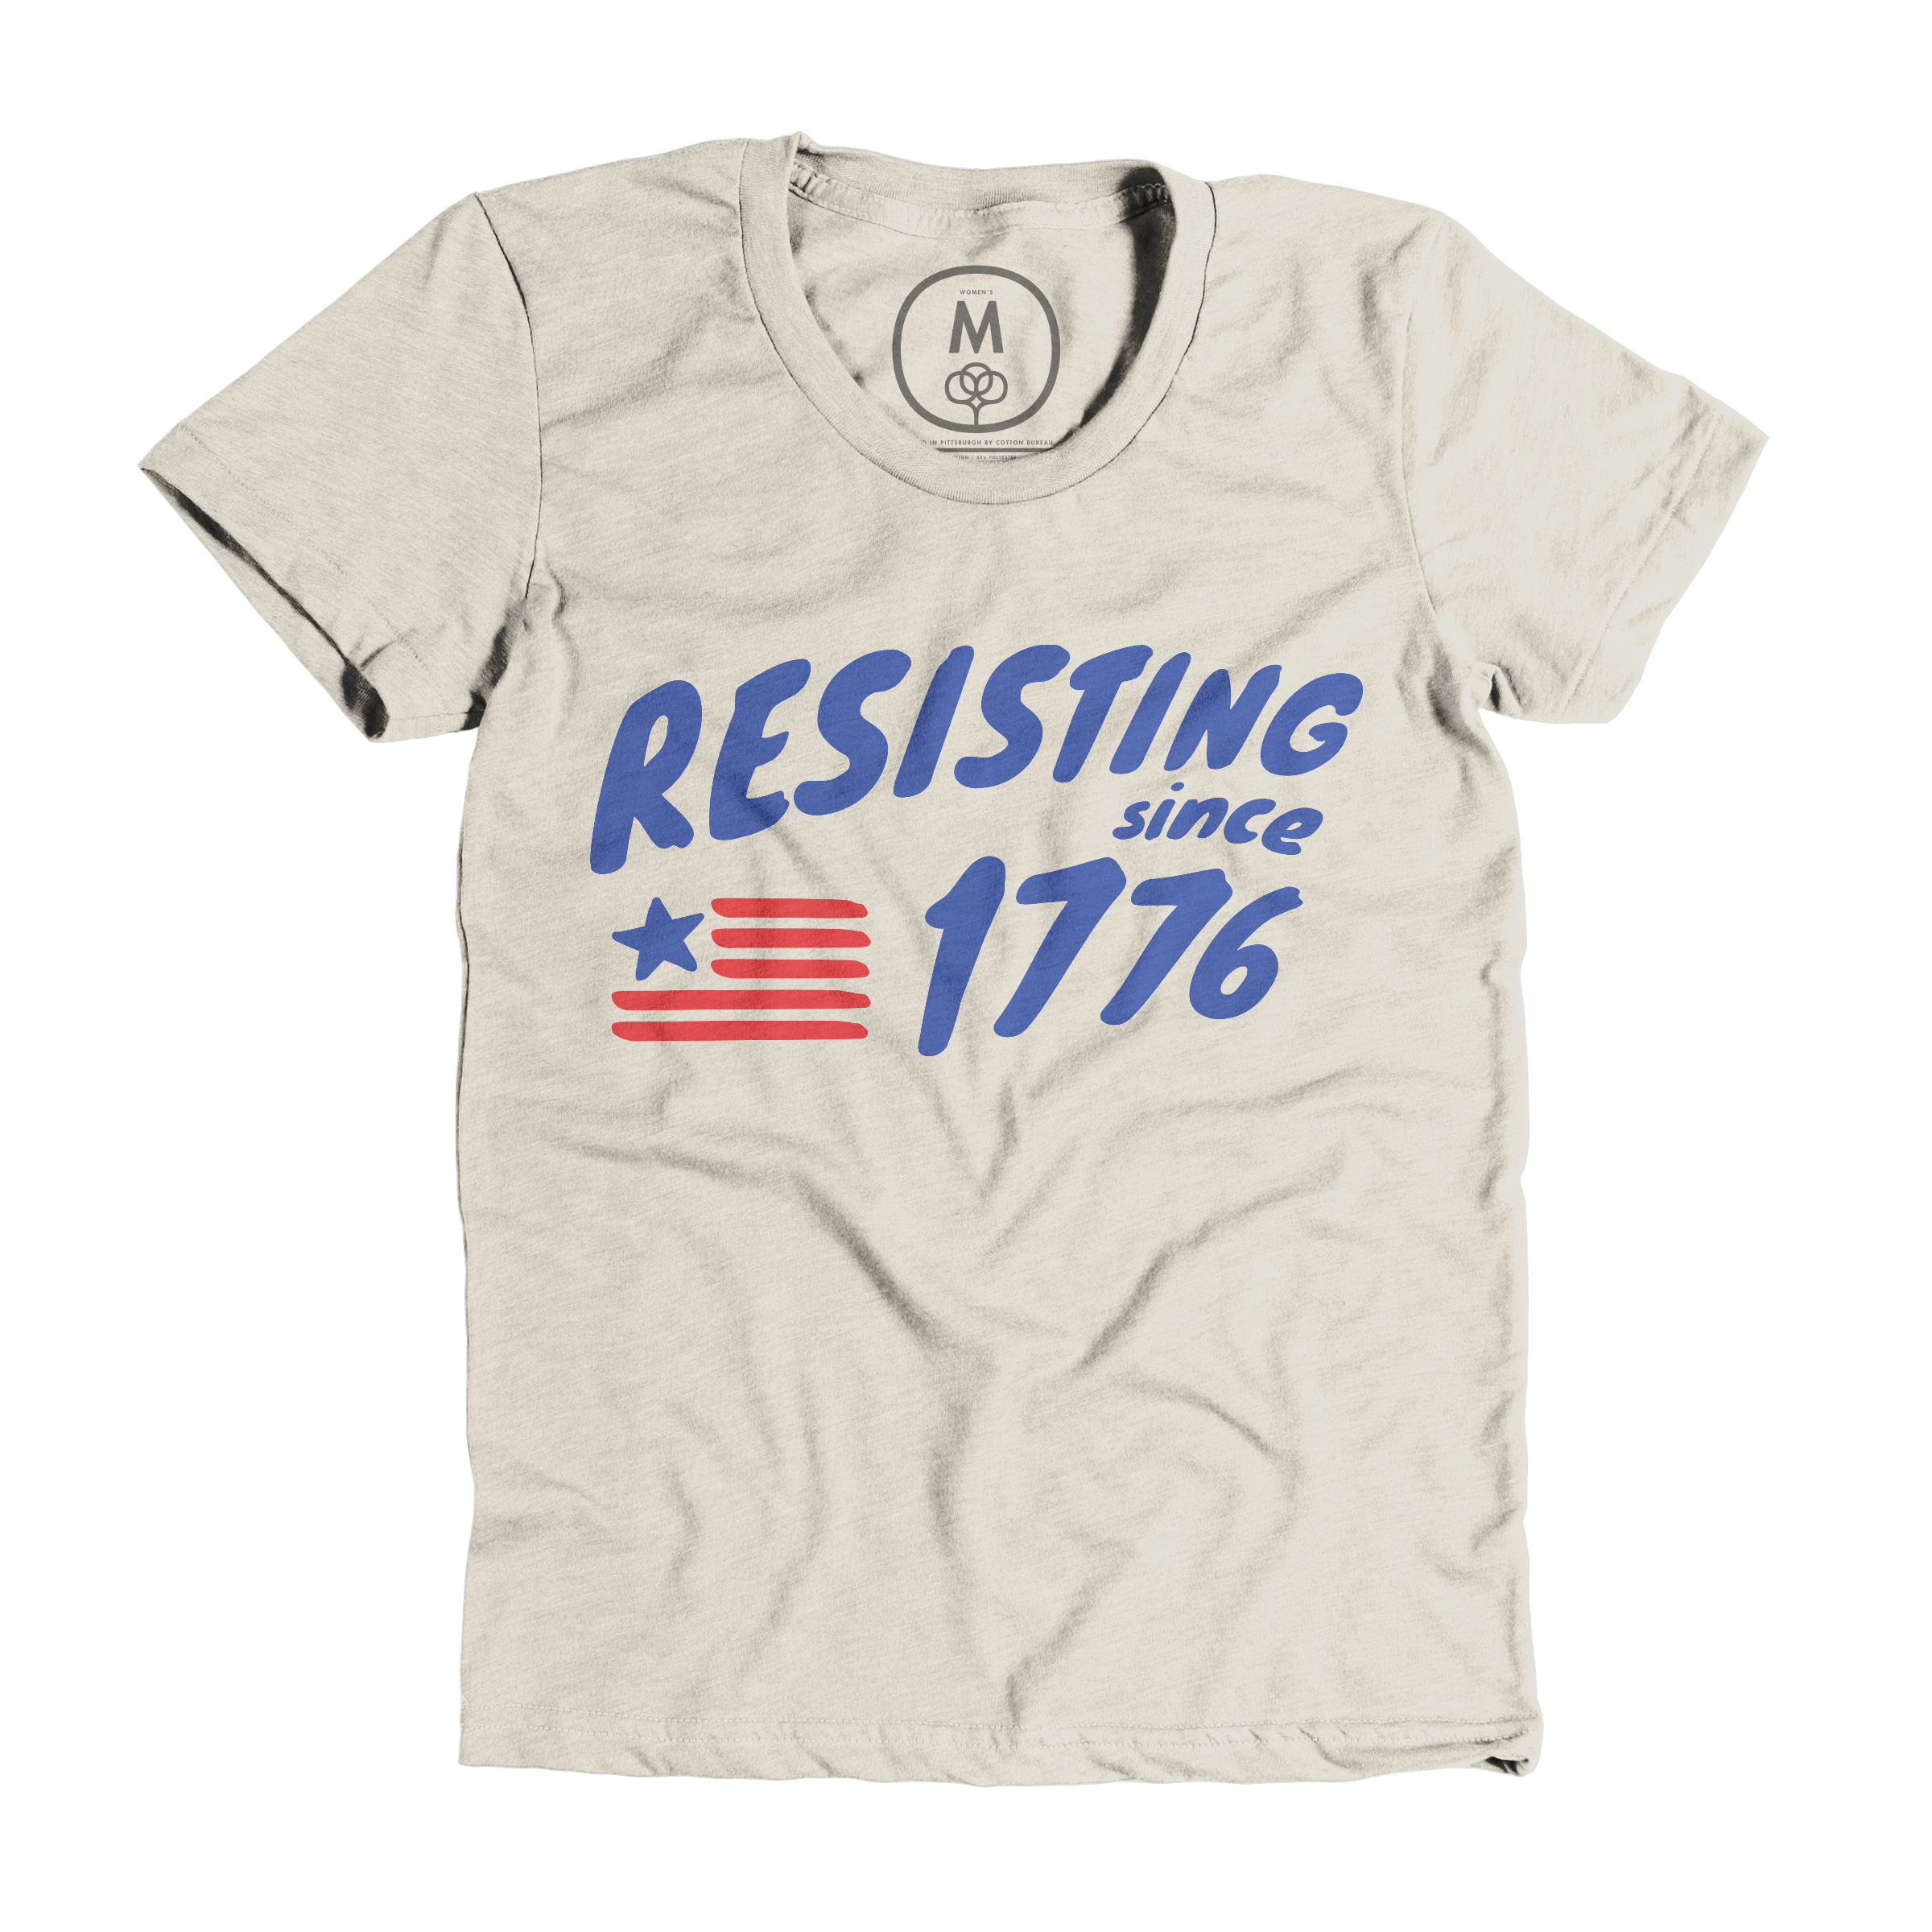 Resisting Since 1776 Sand (Women's)